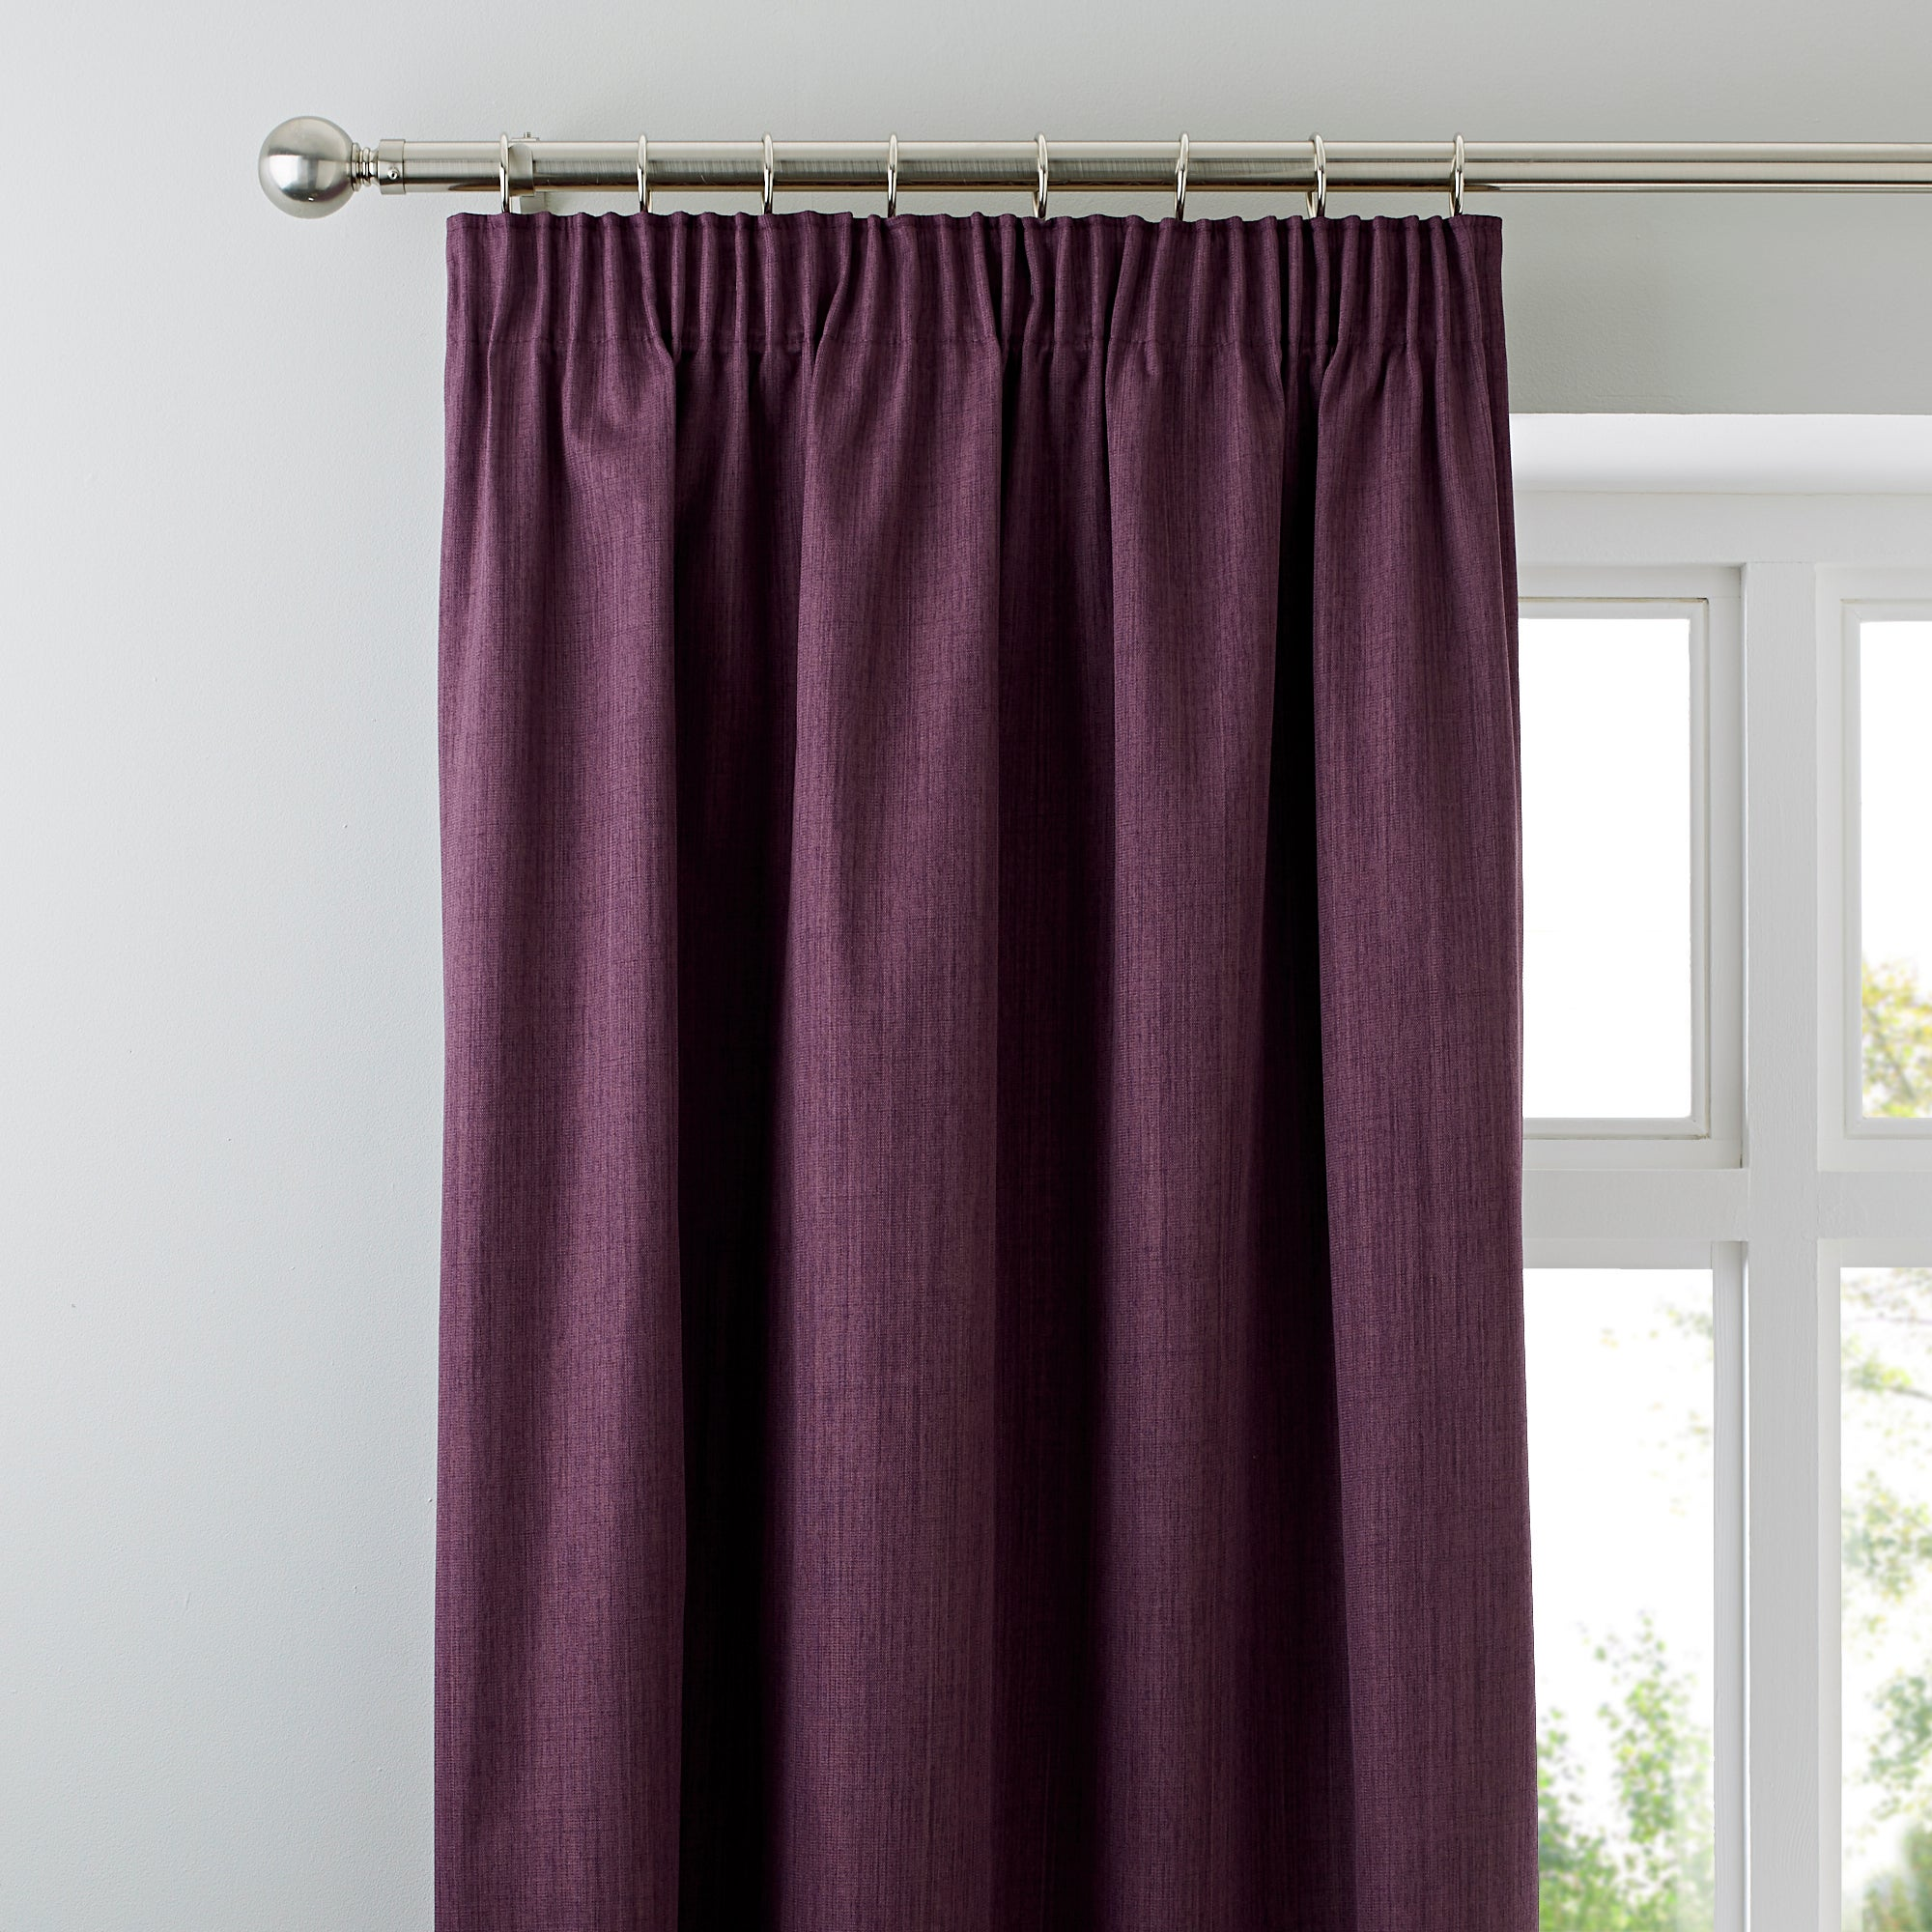 Waters and Noble Aubergine Solar Blackout Curtains